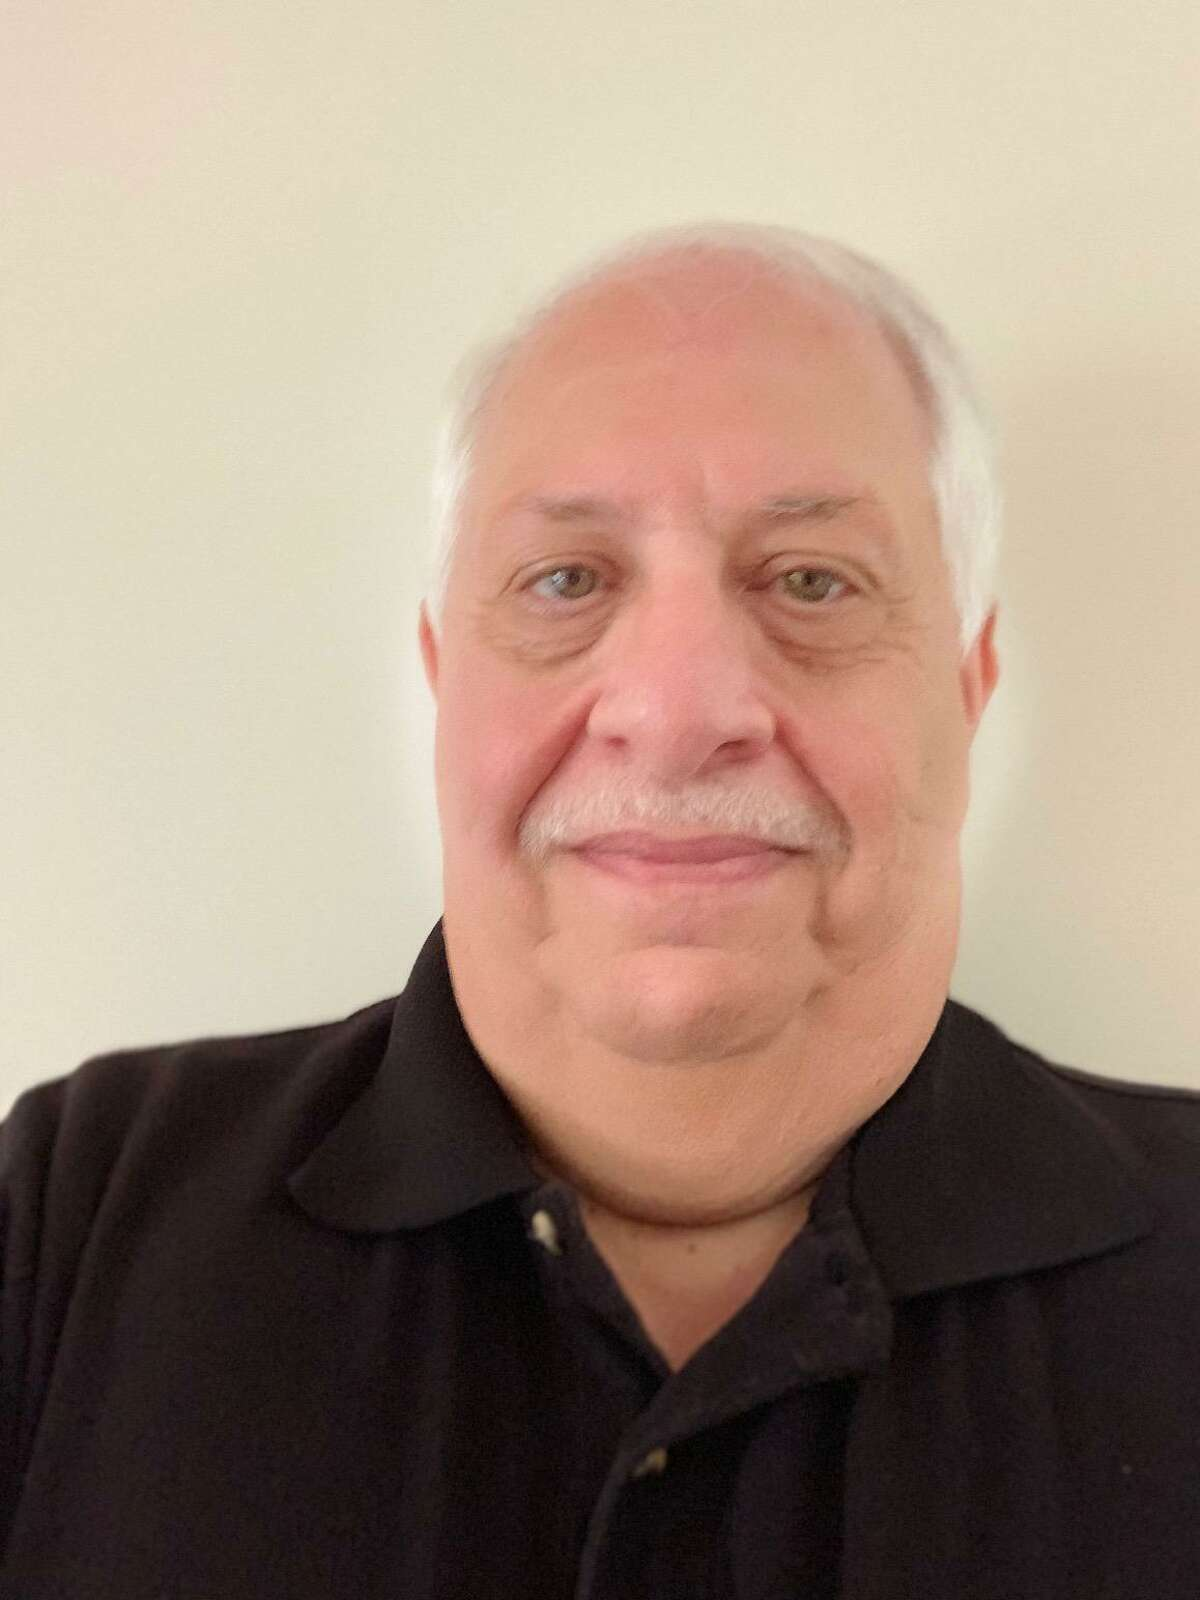 Richard Bshara, a newly elected member of Ansonia's Board of Education, has been appointed to the Ansonia-Derby Temporary School Regionalization Study committee. He replaces Tracey DeLibero who recently resigned.